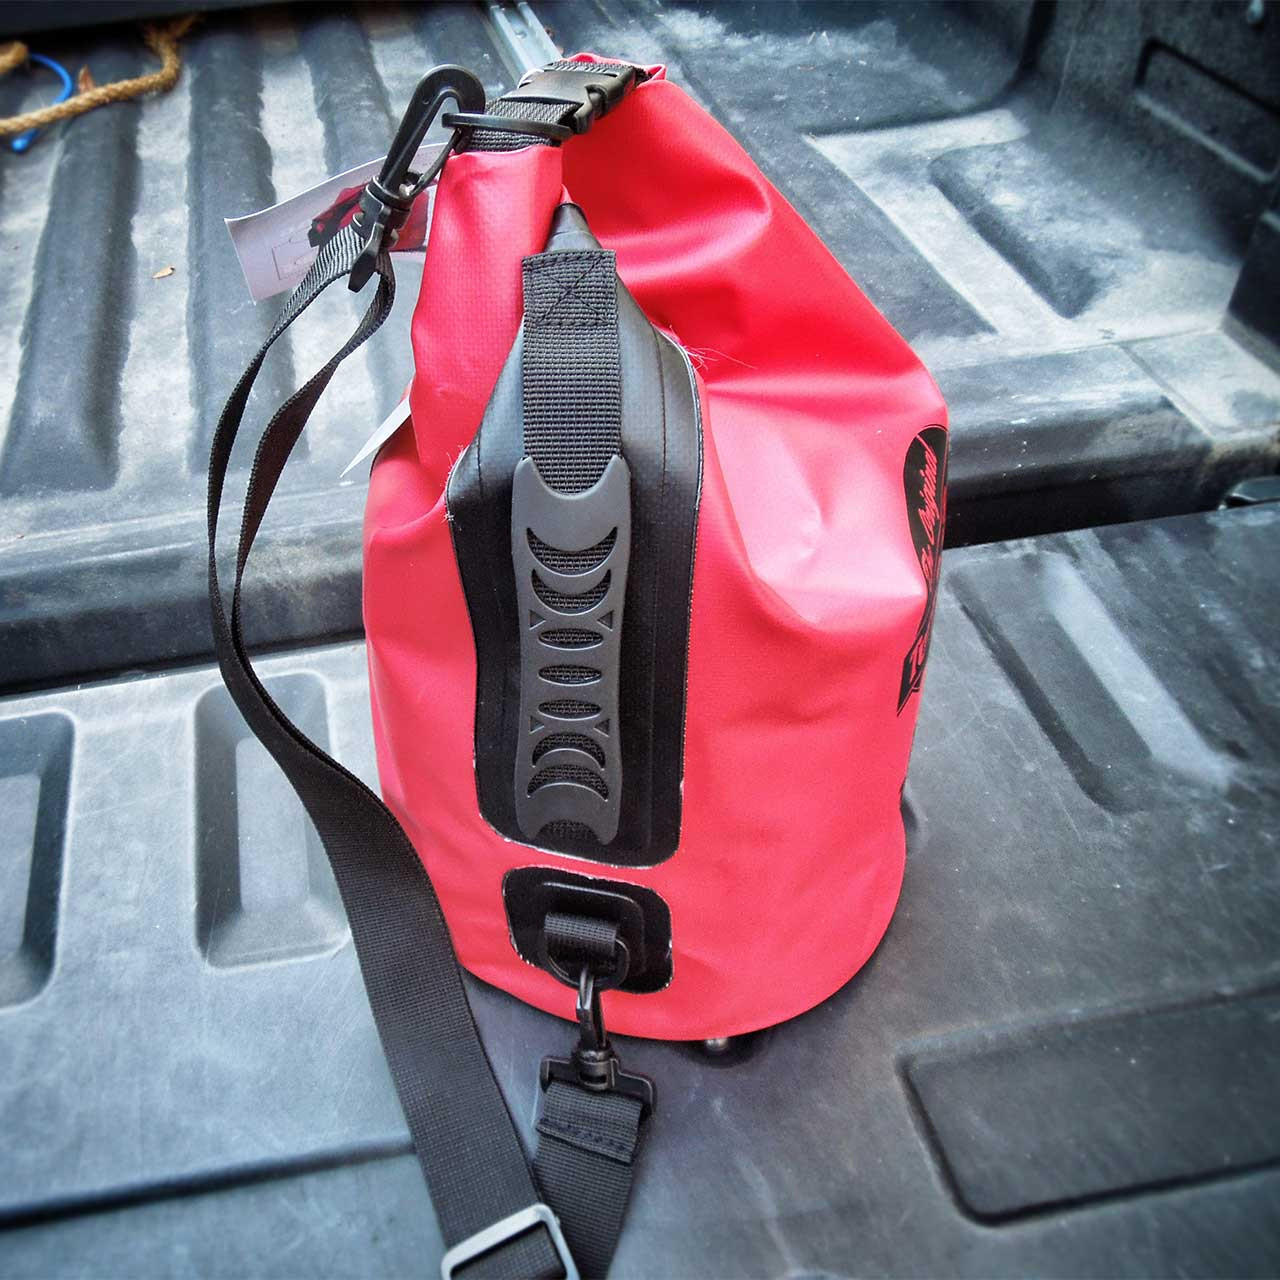 Back handle view of the waterproof class three red bag with strap and roll down handle.